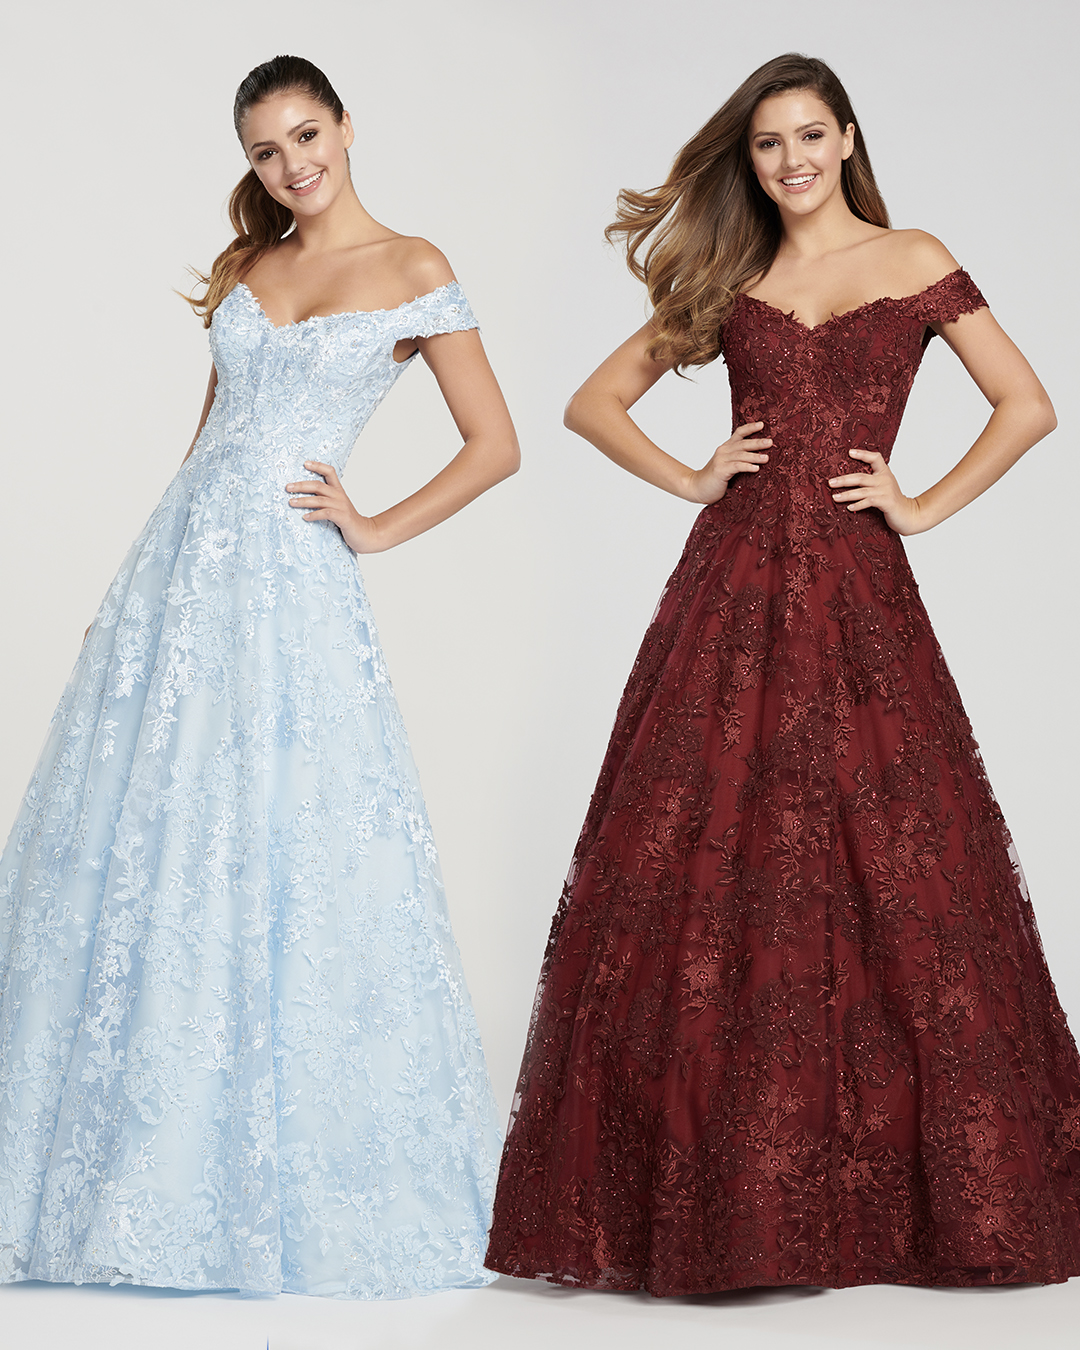 Prom Designers — MESTAD'S BRIDAL AND